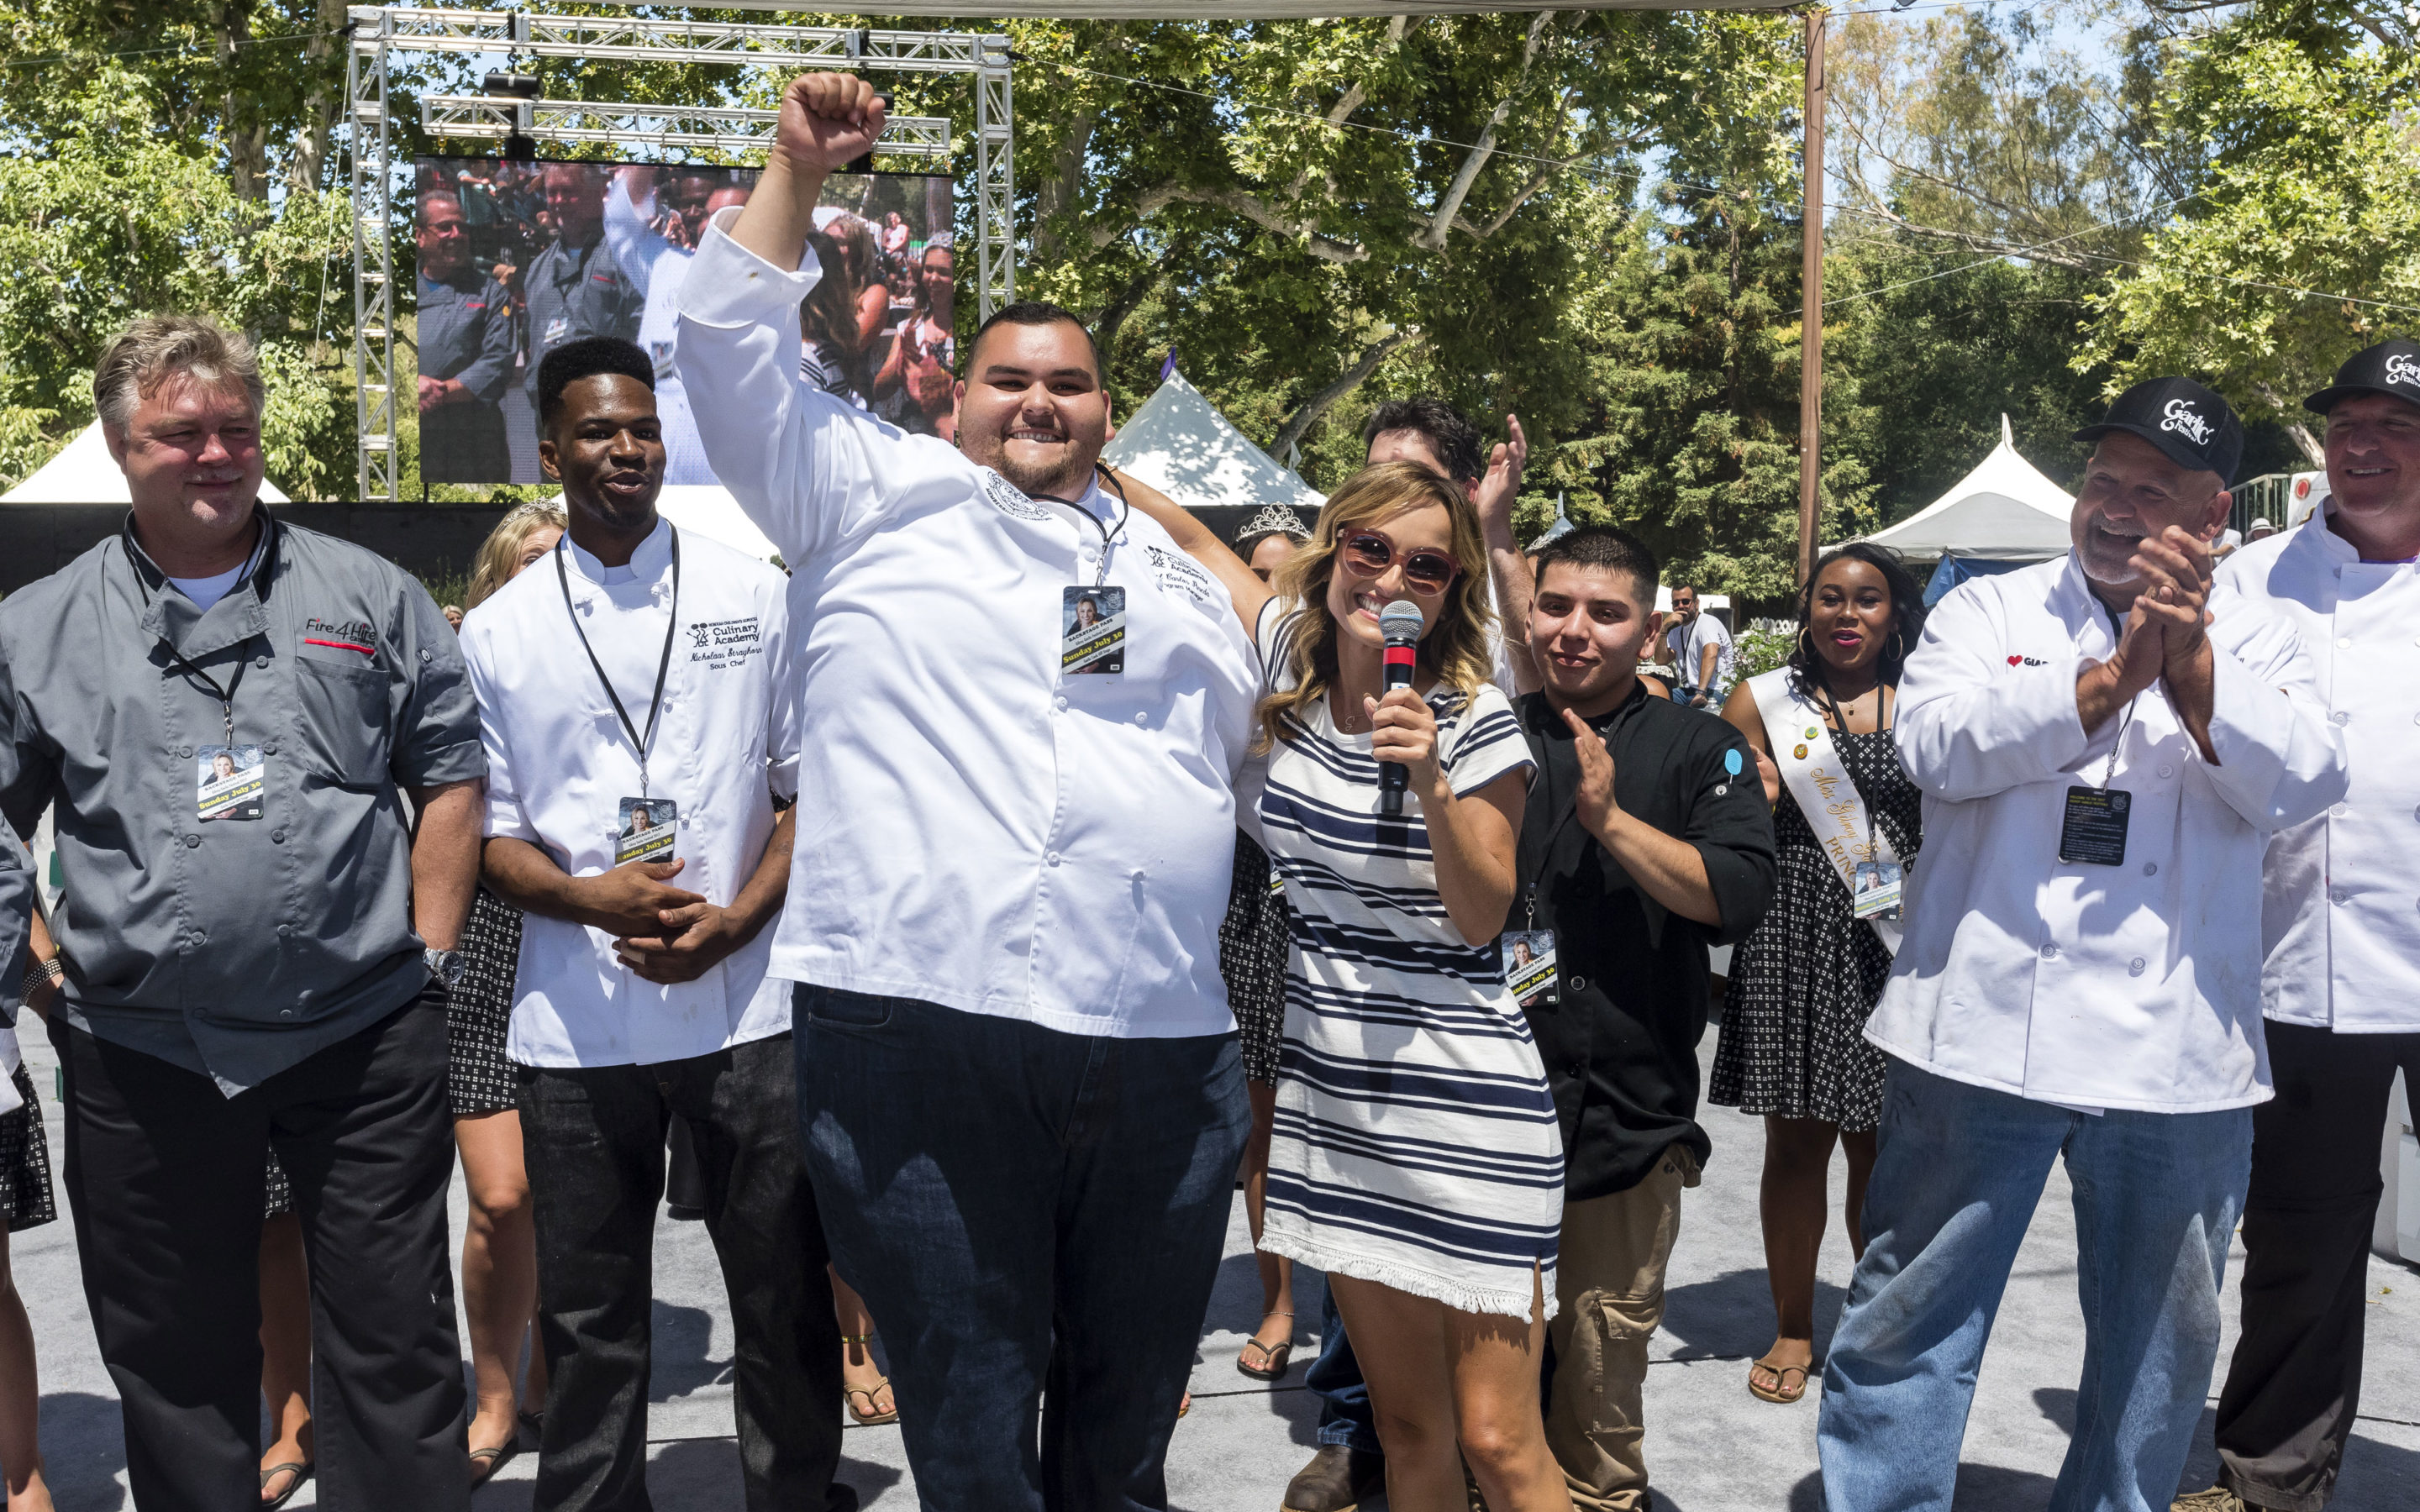 Main story: Academy chef wins prize in Garlic Showdown Cooking Competition